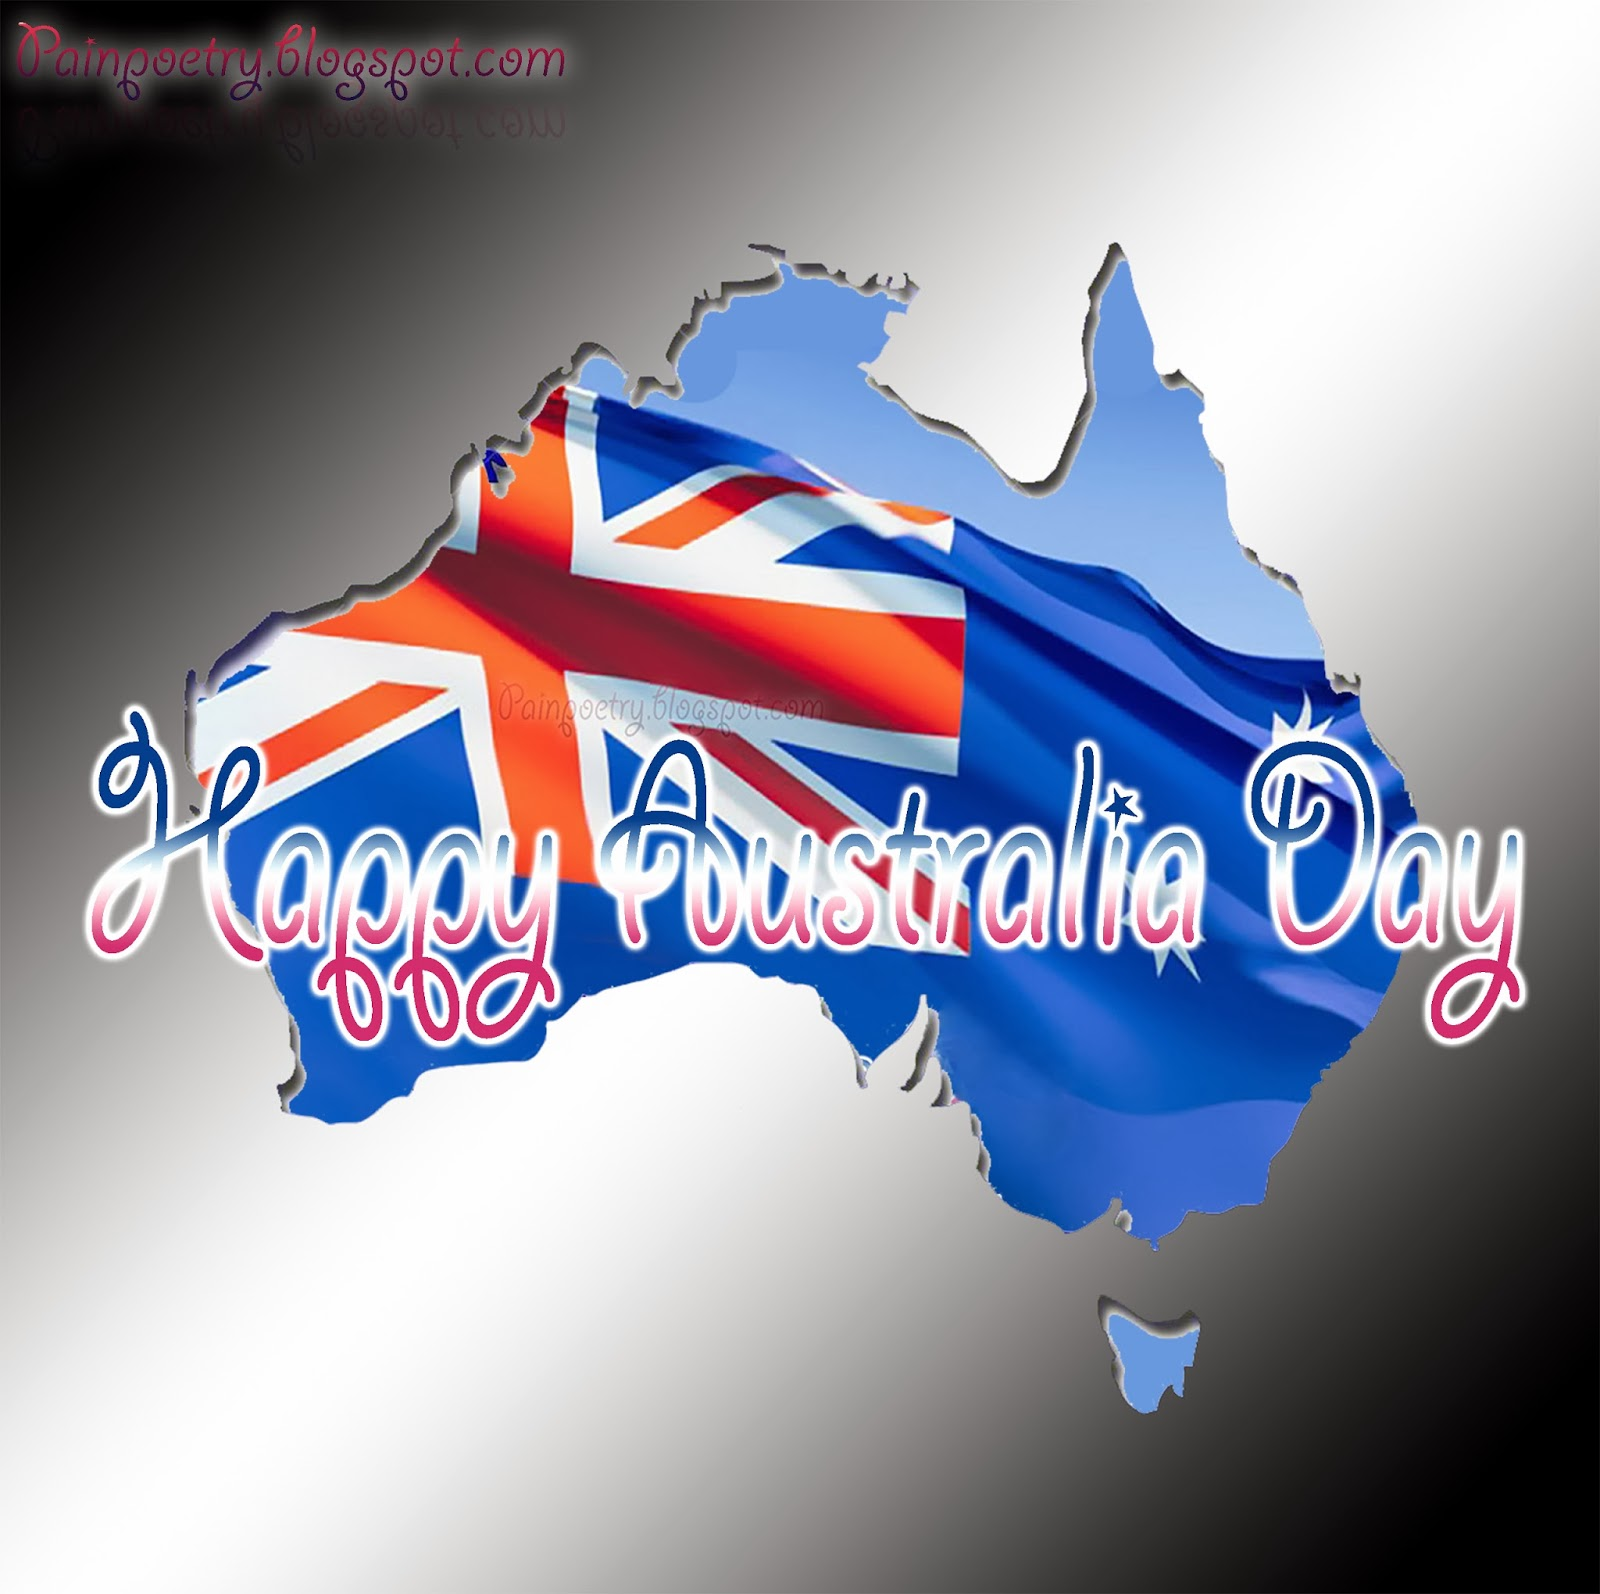 Happy-Australia-Day-Walpaper-Flag-Of-Australia-In-Map-Image-HD-Wide